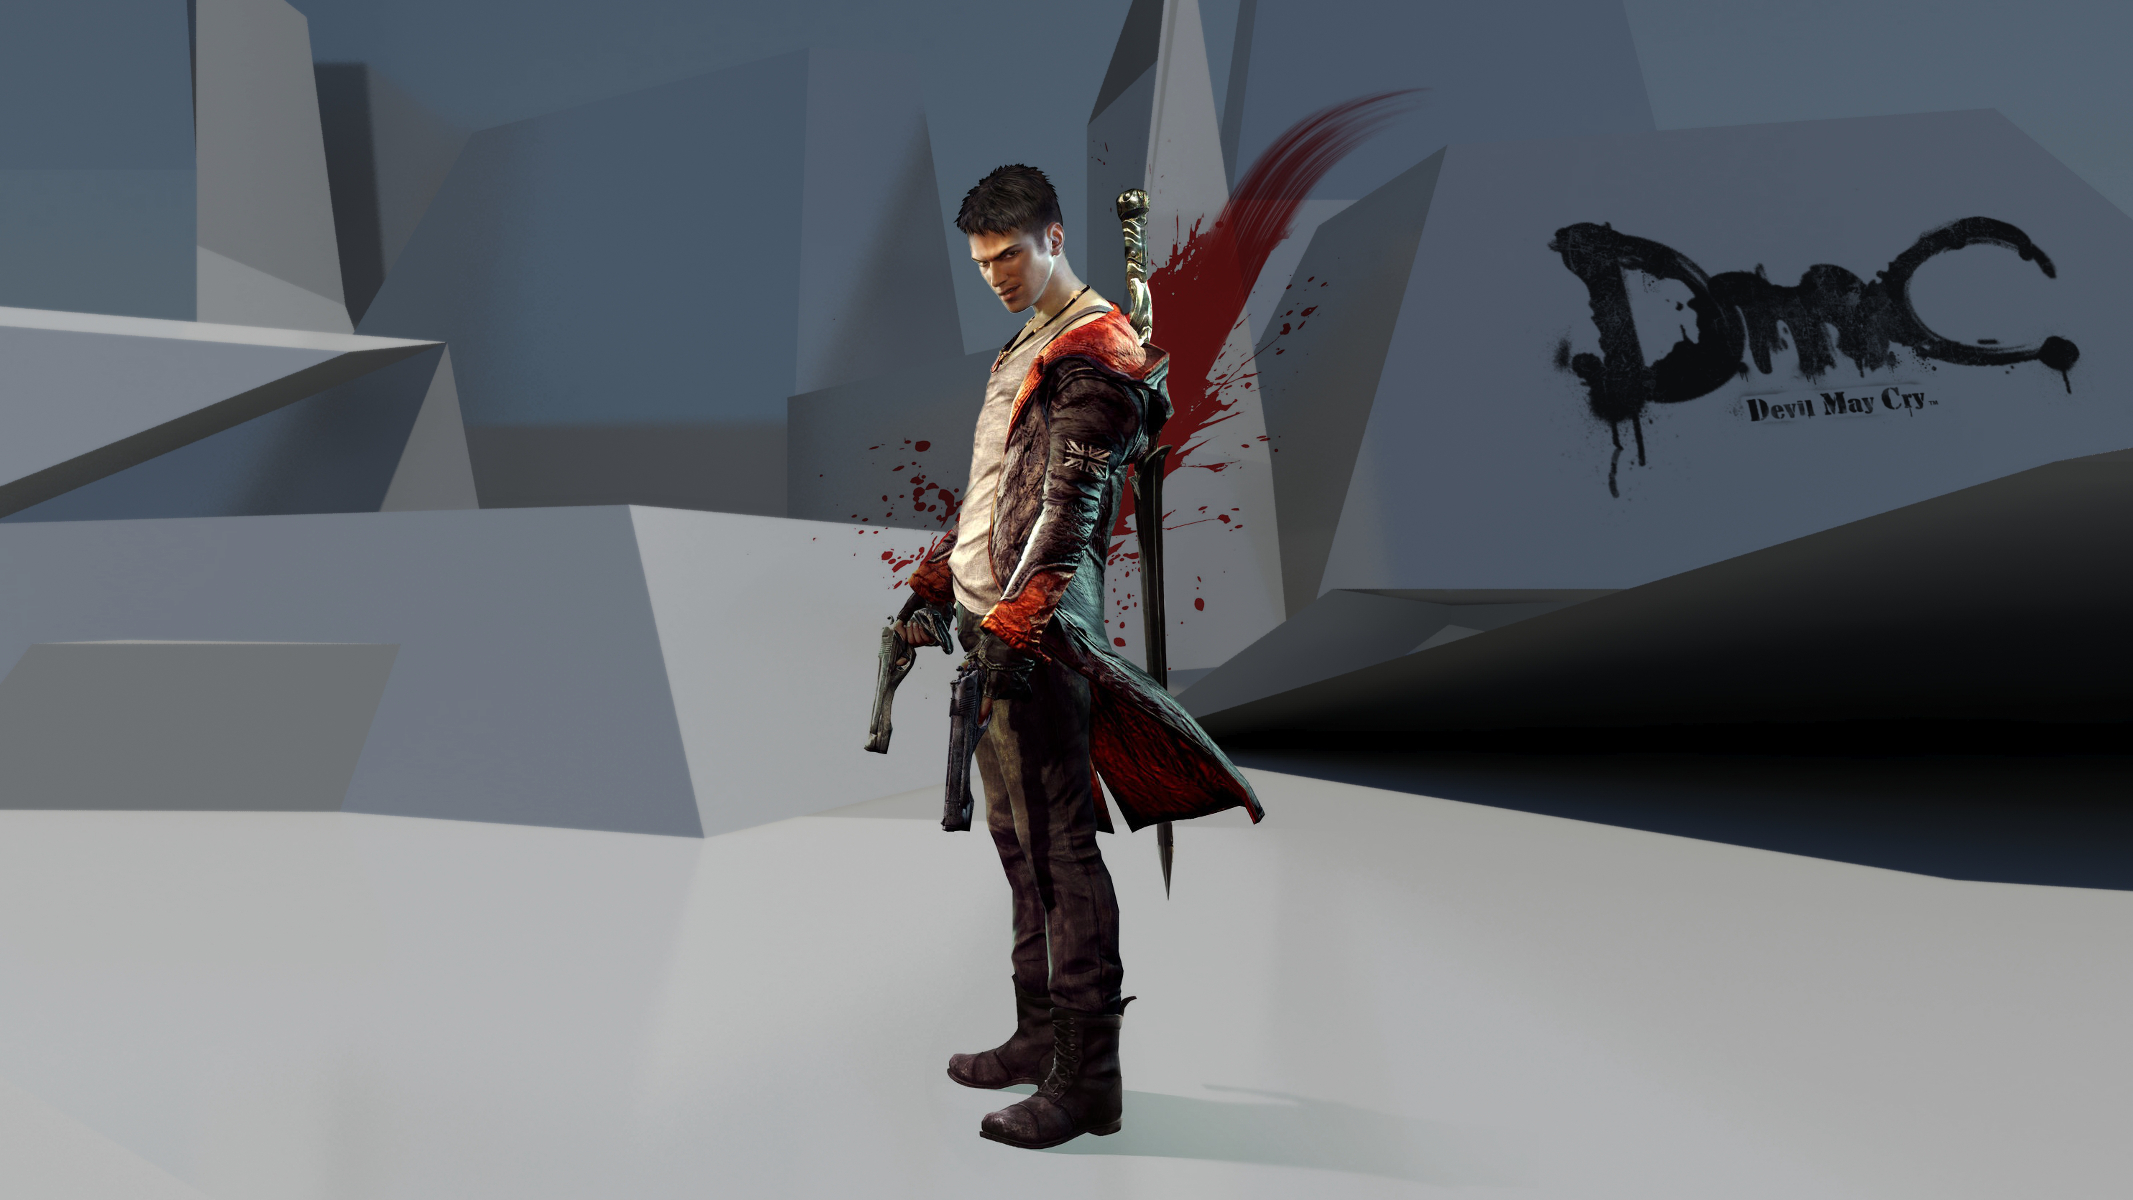 Devil may cry 5 dante 3d wallpaper by binary map on deviantart devil may cry 5 dante 3d wallpaper by binary map voltagebd Gallery